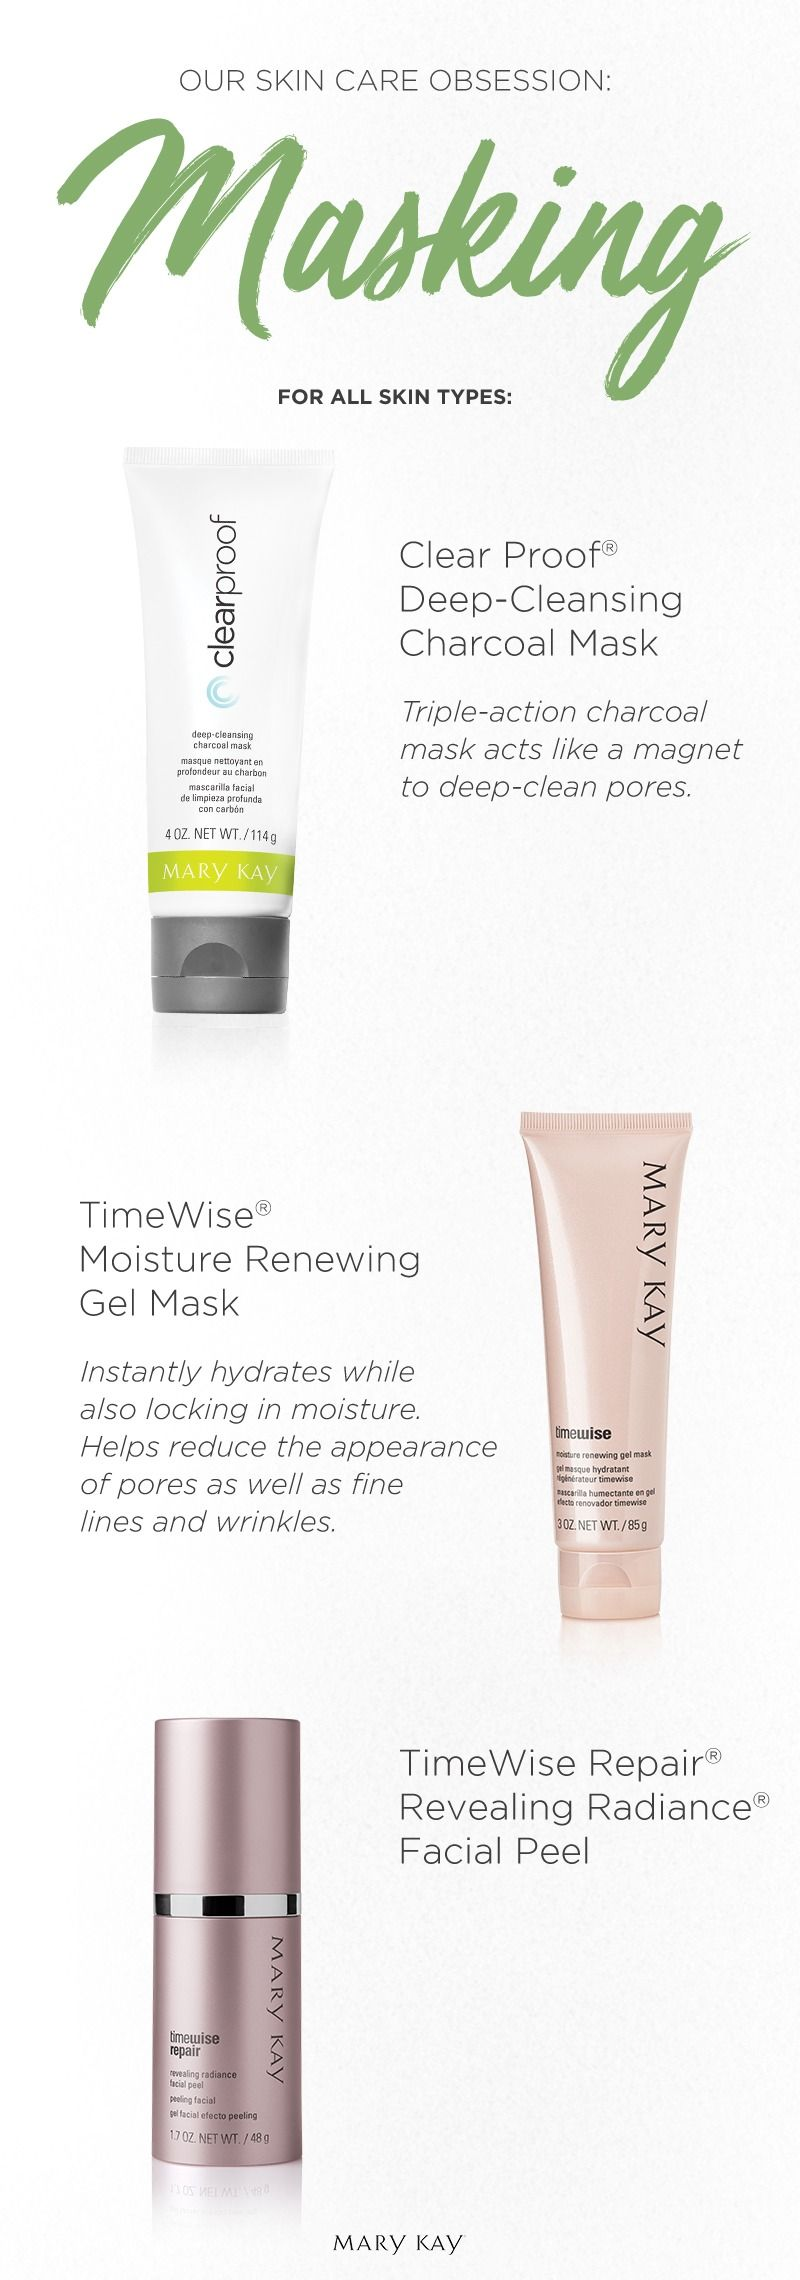 Follow this simple guide to masks for a range of different skin types! Looking for natural beauty solutions? Try Botanical Effects® Masks! Want to deep clean pores? We love the Clear Proof® Deep-Cleansing Charcoal Mask. And to help your skin look fresher and more youthful, try the TimeWise® Moisture Renewing Gel Mask. | Mary Kay